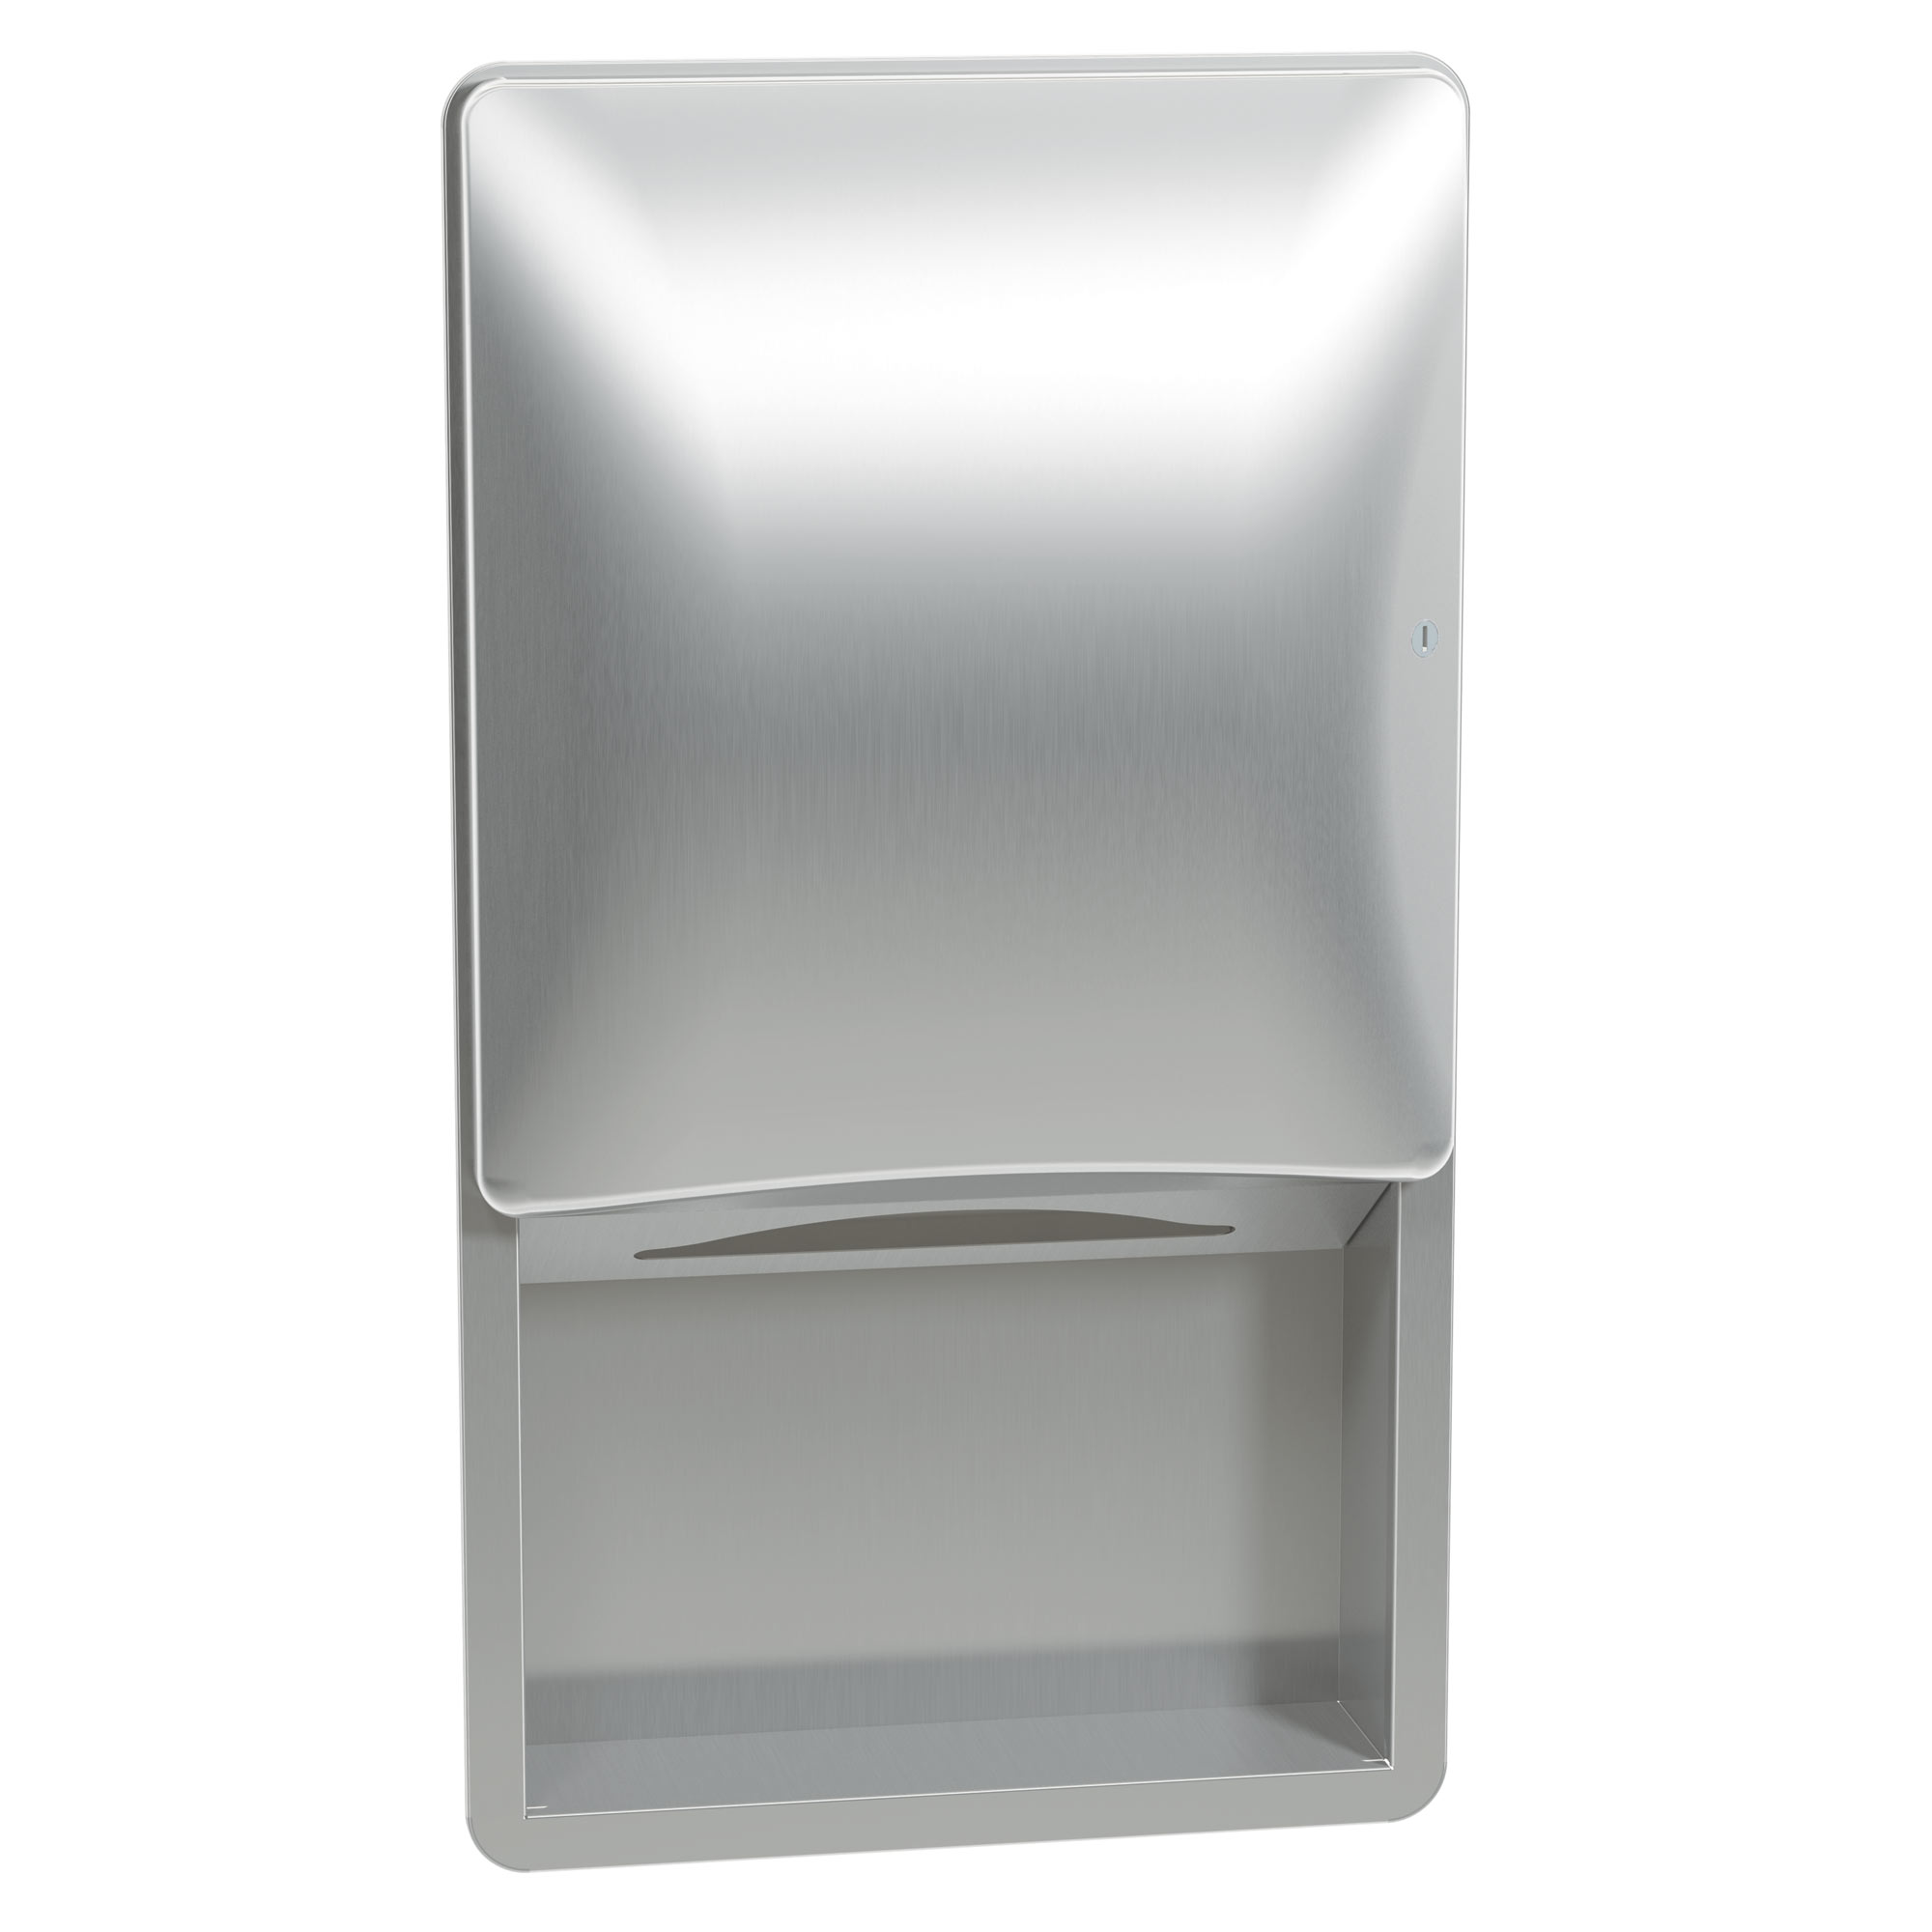 Bradley 2A01-11 Surface-Mounted Lever-Activated Towel Dispenser